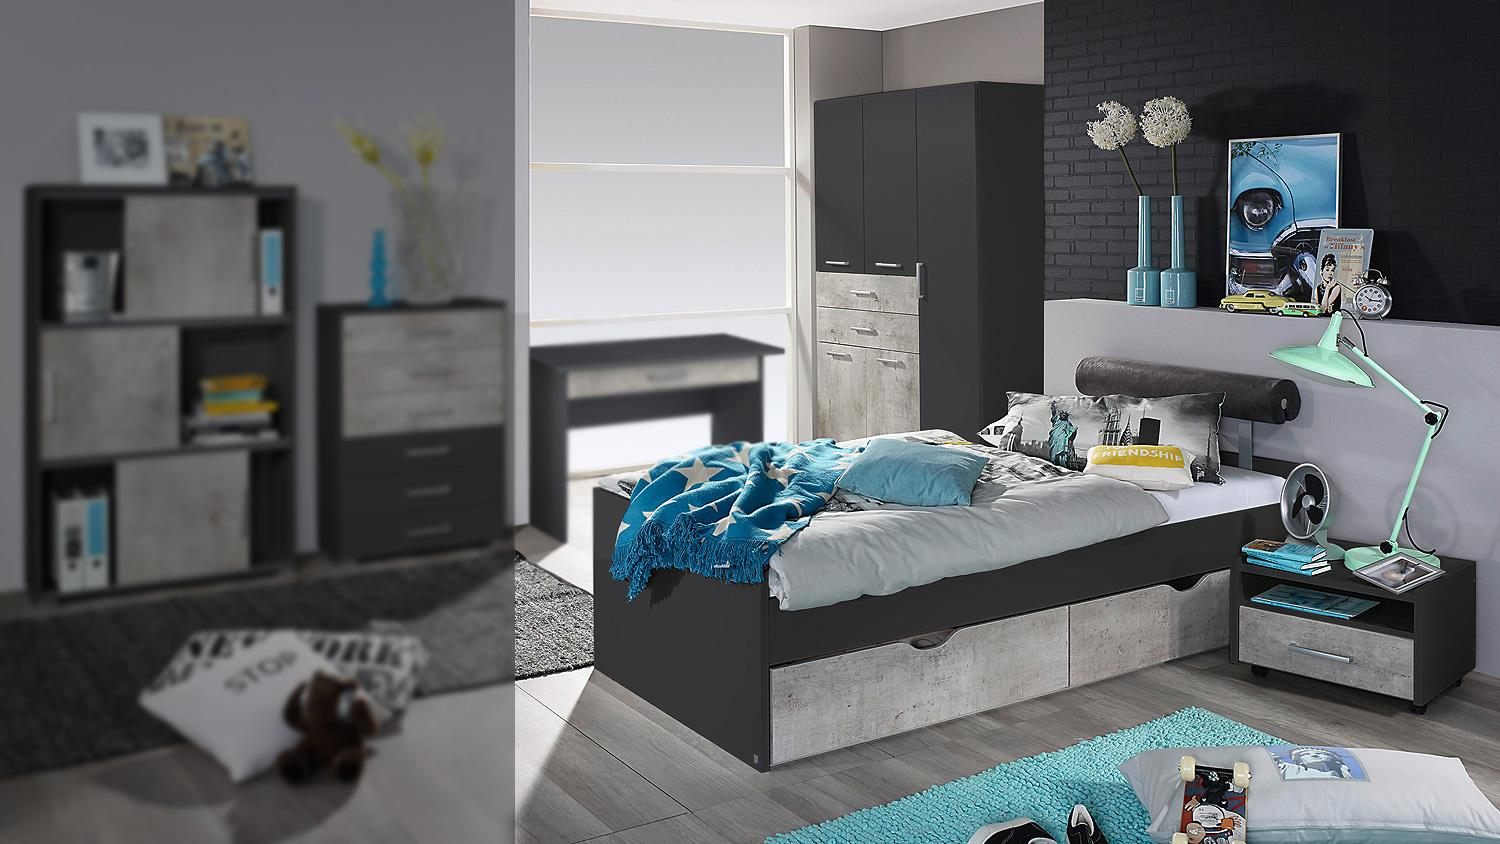 jugendzimmer set 1 mailo bett schrank nako in grau metallic und beton. Black Bedroom Furniture Sets. Home Design Ideas